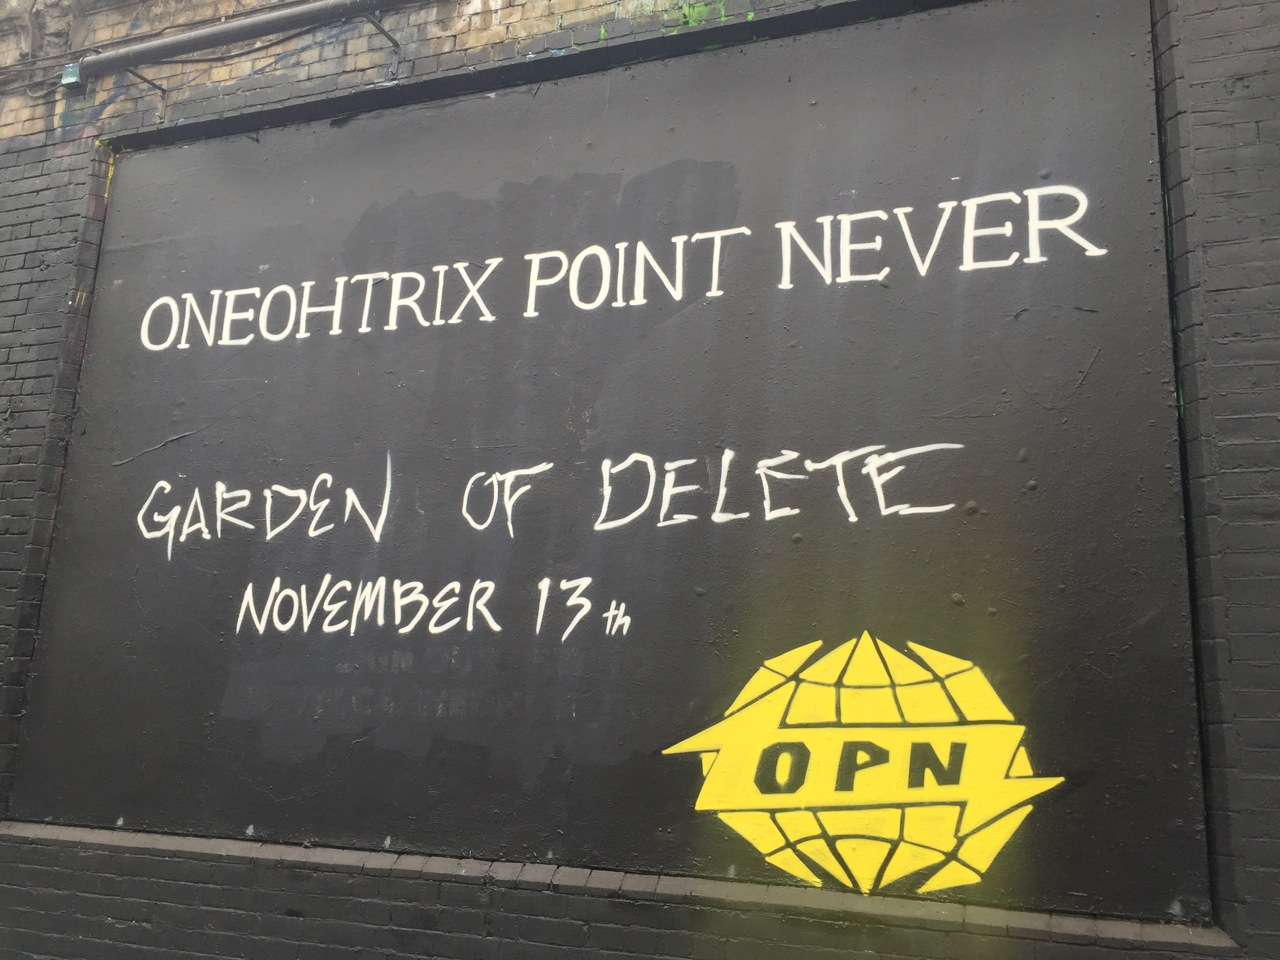 Warp records garden of delete at shoreditch art wall - Oneohtrix point never garden of delete ...